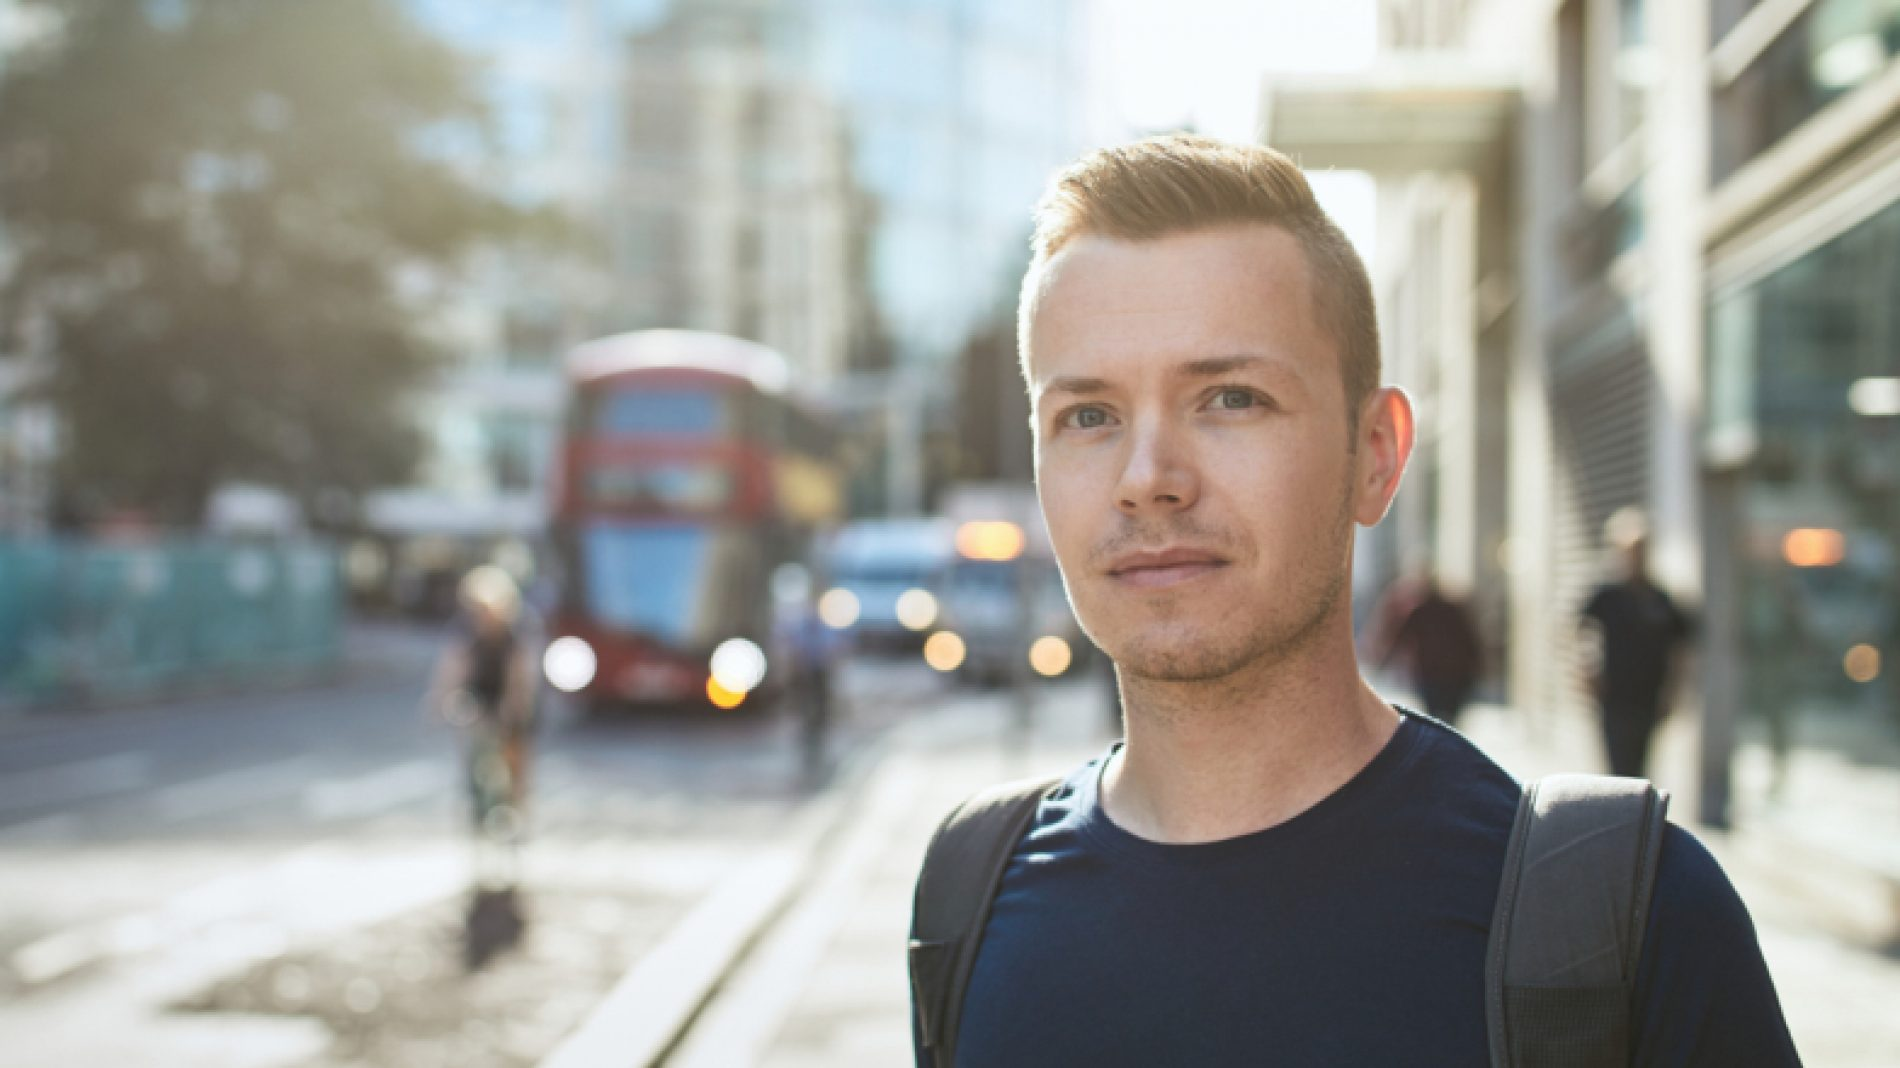 young-person-with-bus-in-the-background-2cu25x